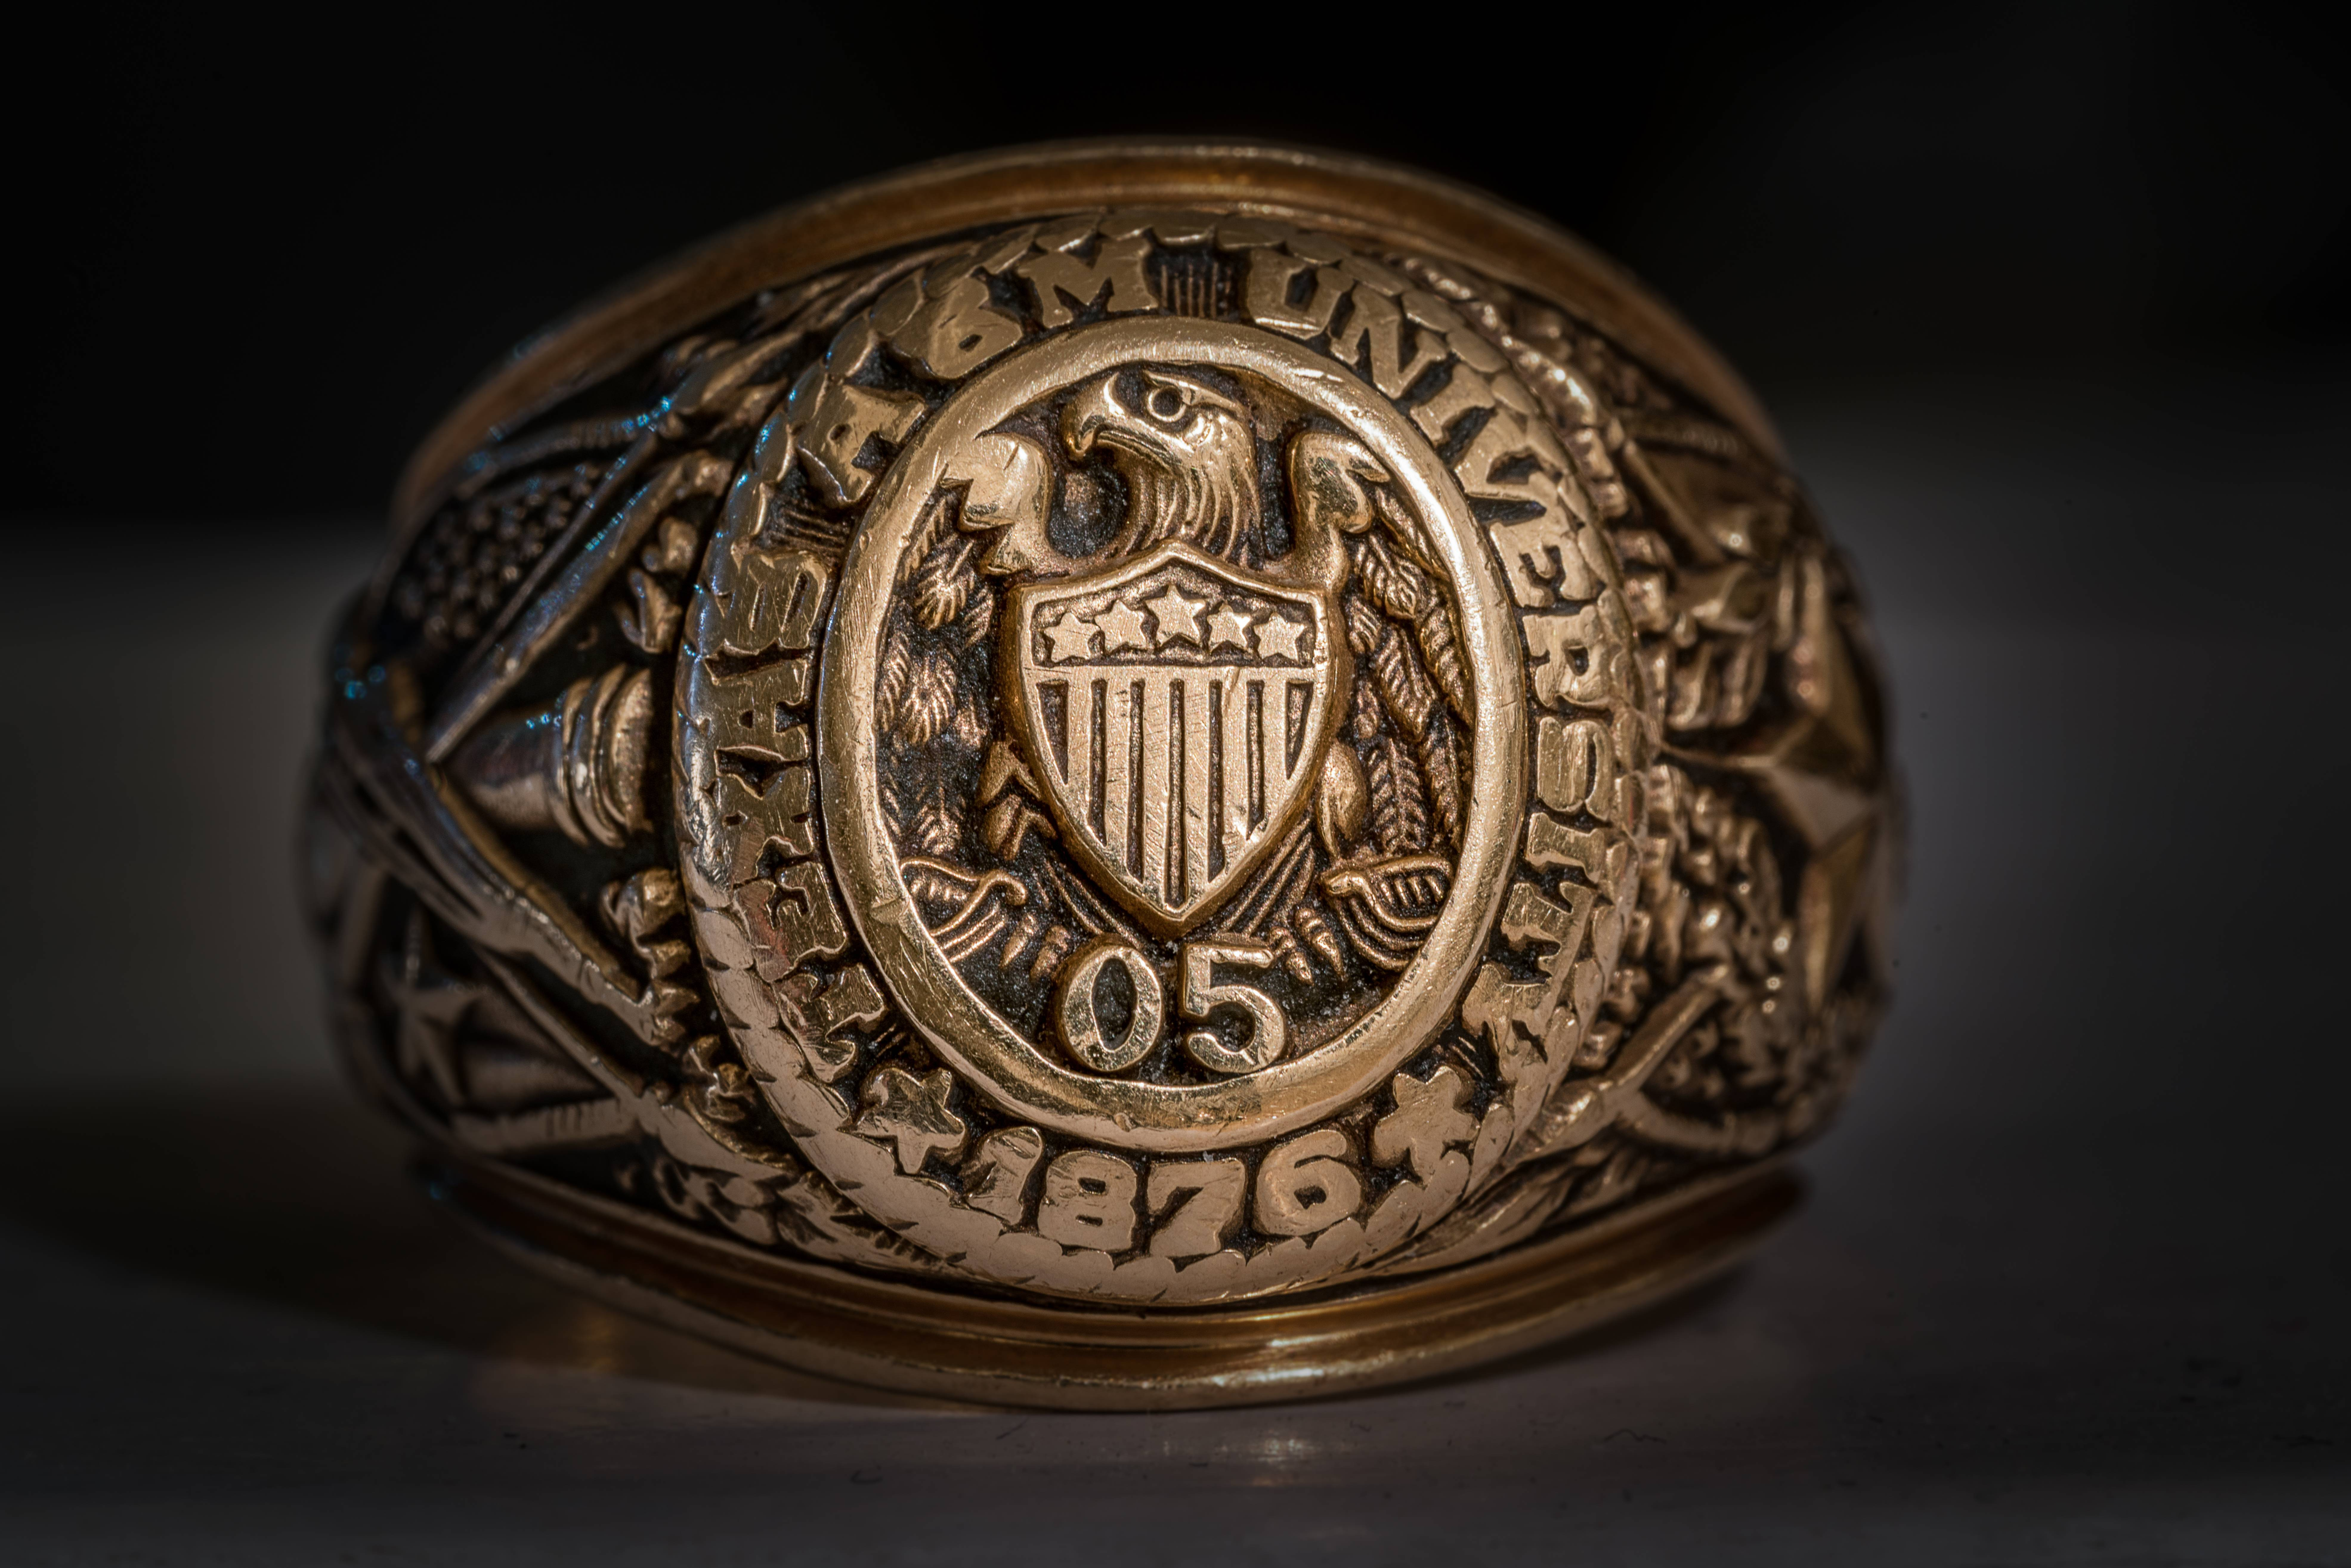 College Ring Like Texas A M